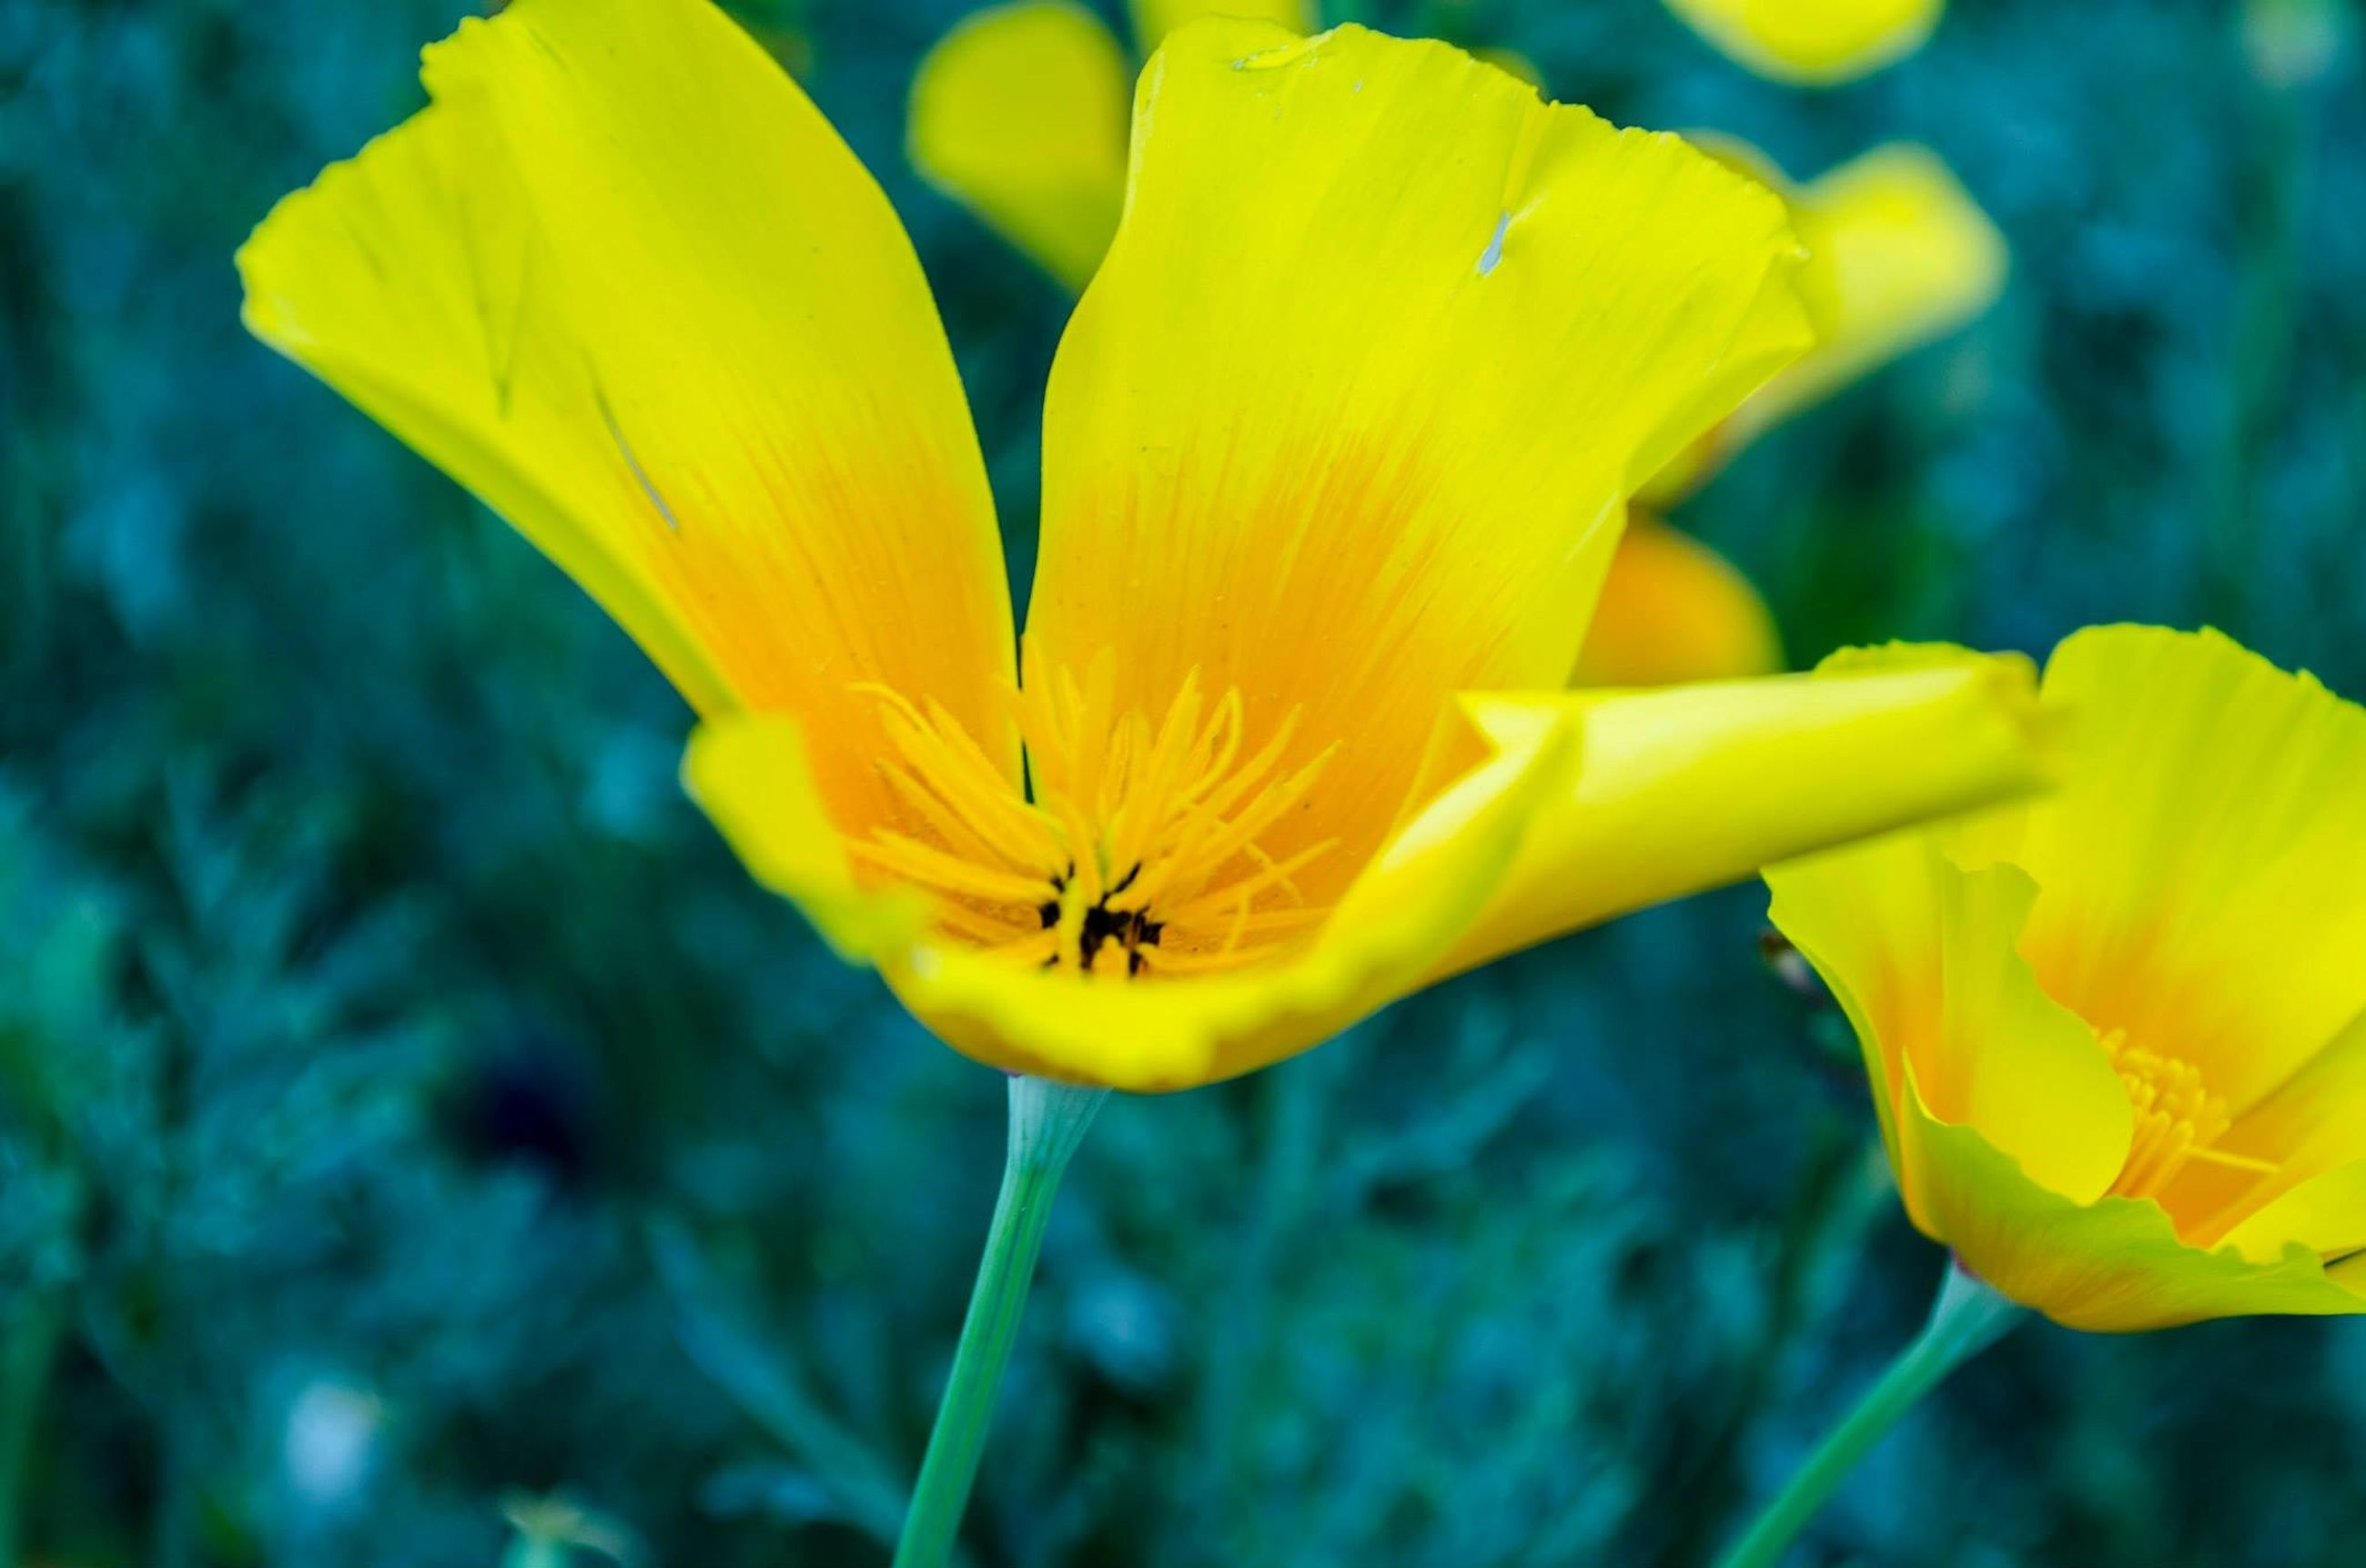 flower, yellow, petal, fragility, flower head, freshness, growth, close-up, focus on foreground, beauty in nature, nature, blooming, plant, pollen, single flower, in bloom, stamen, day, selective focus, stem